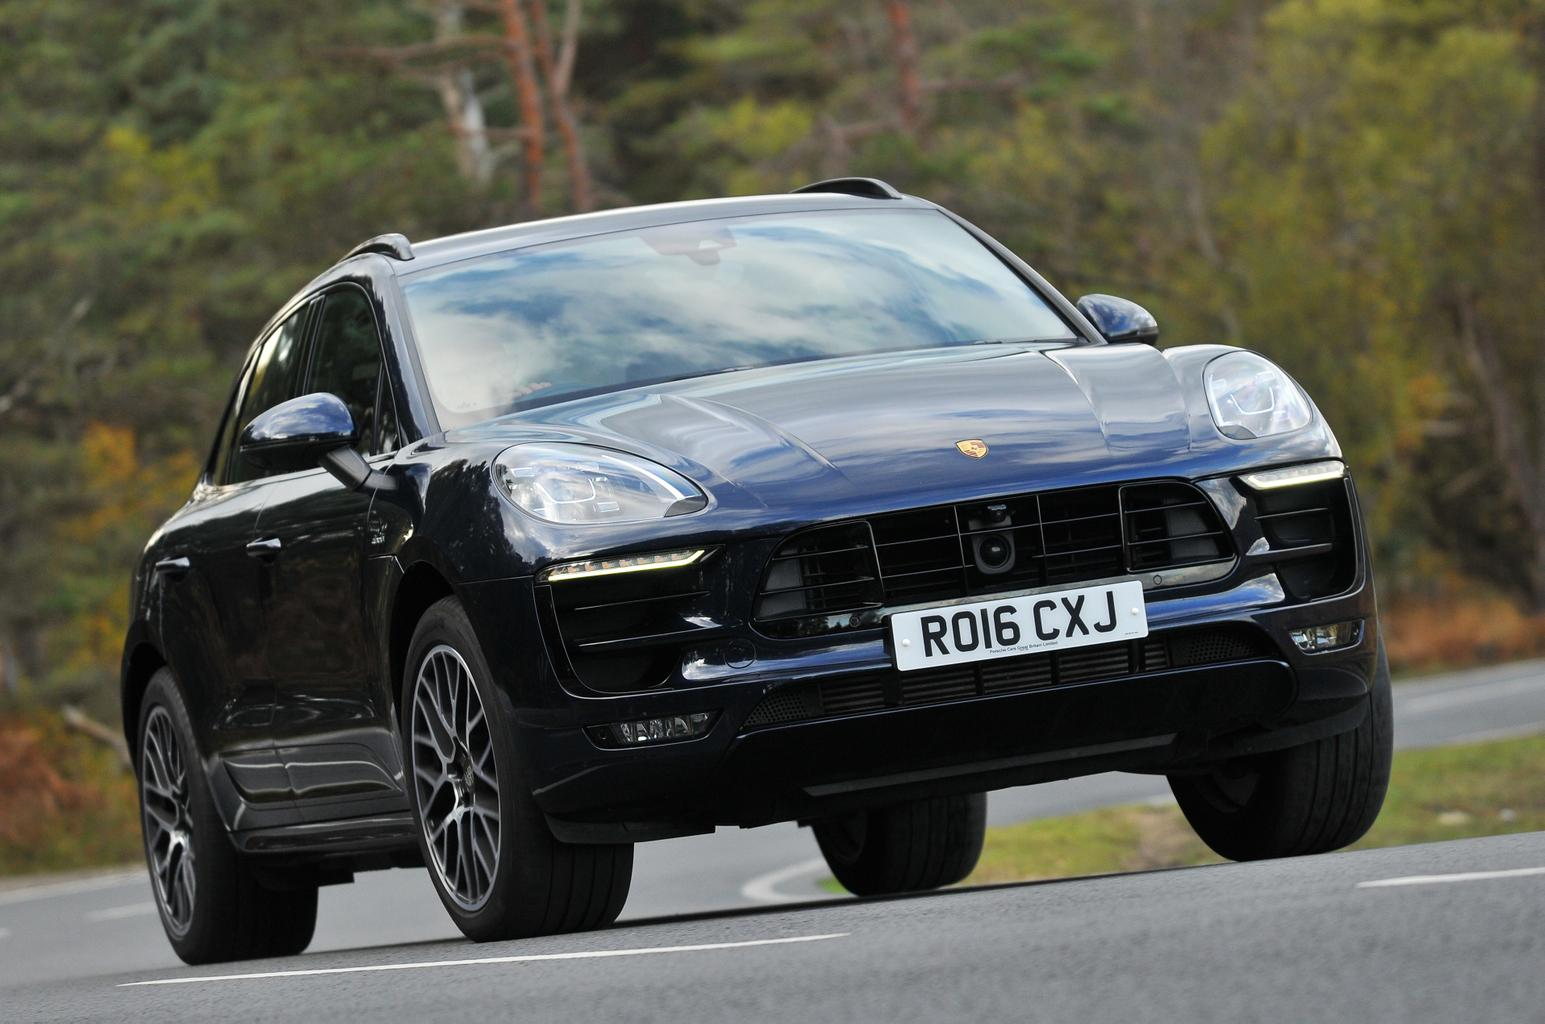 New Maserati Levante vs Porsche Macan